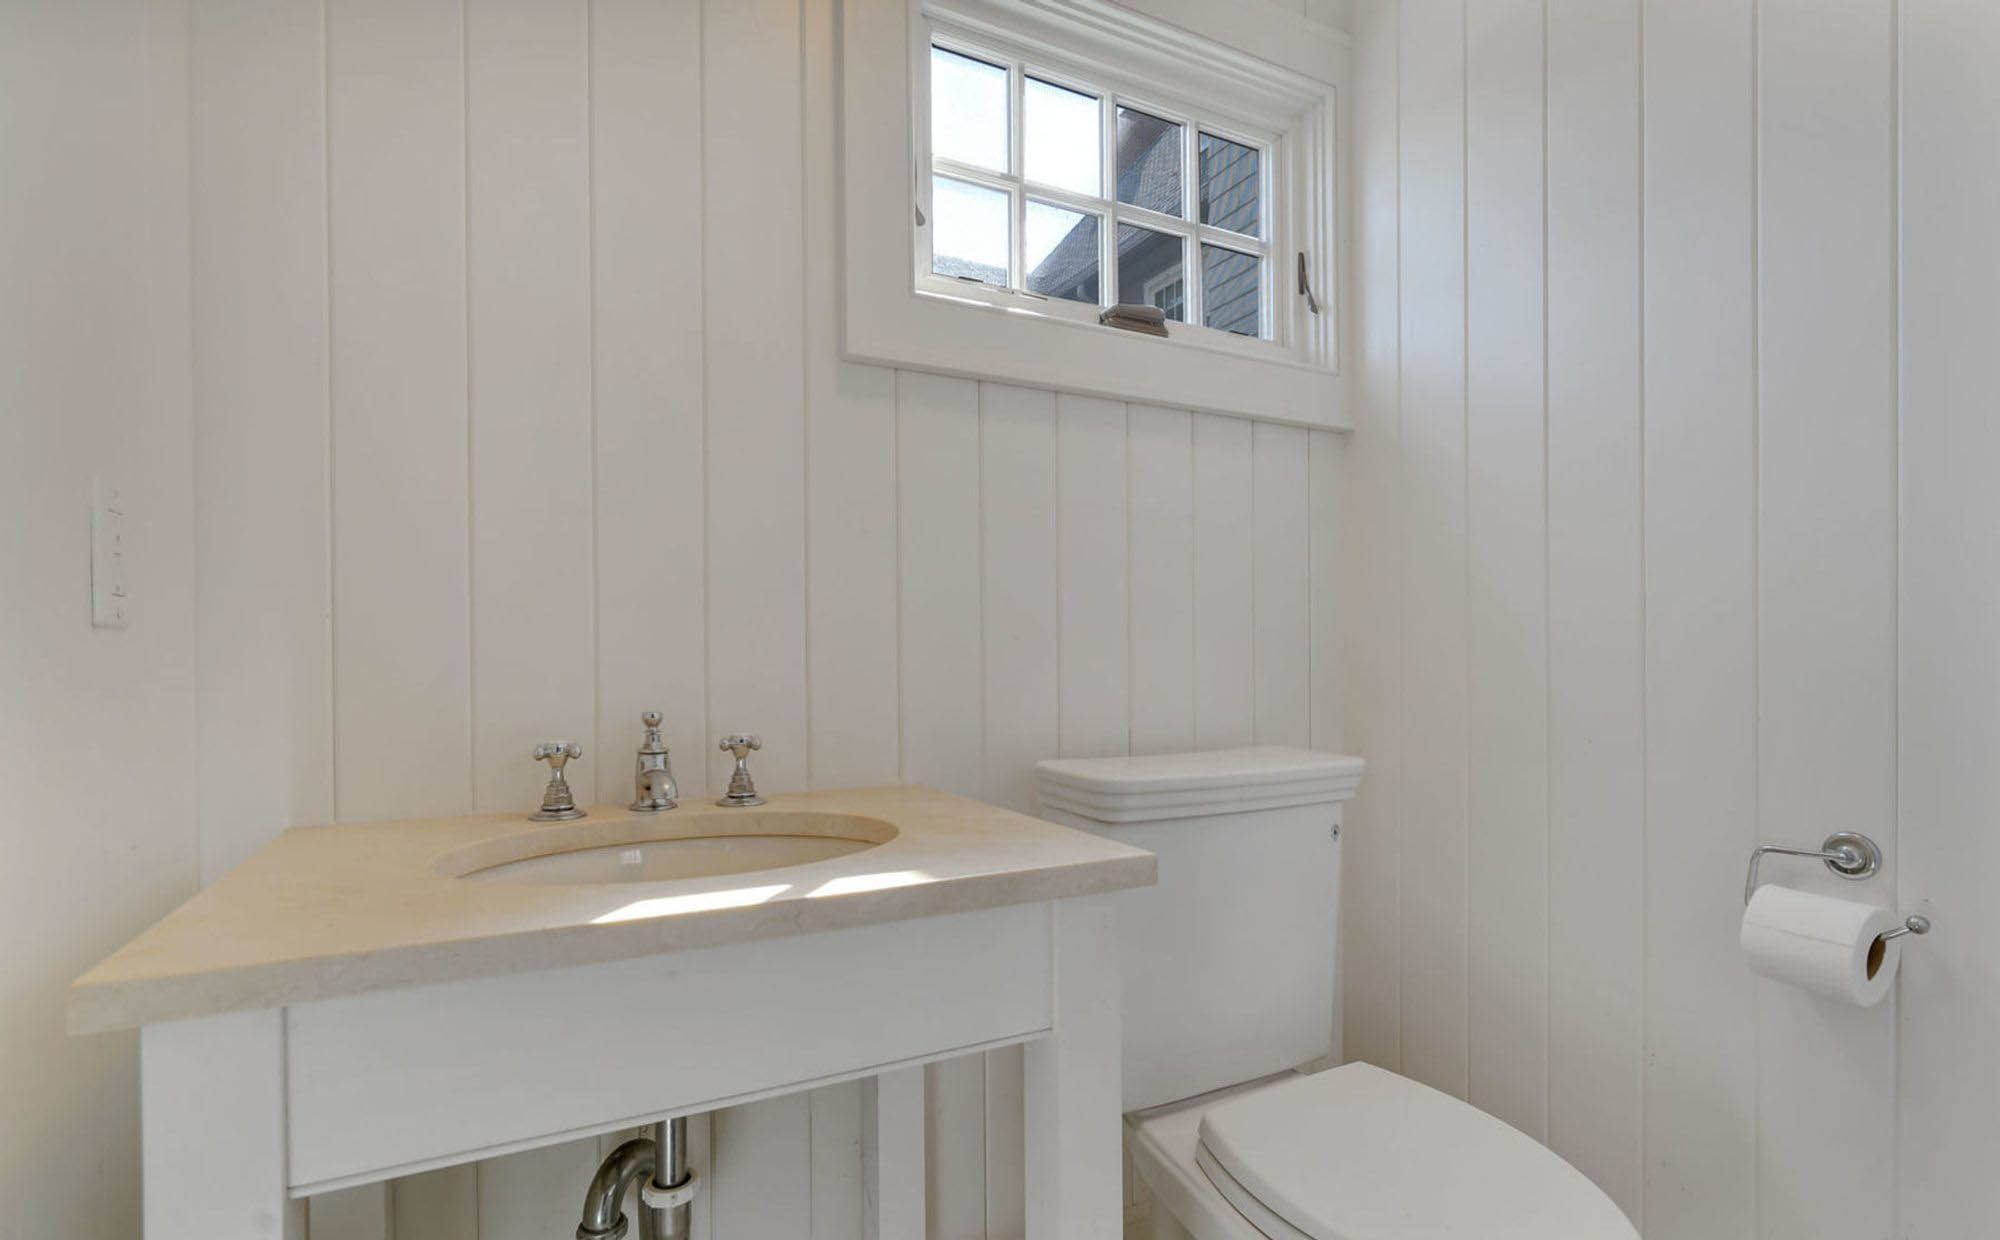 small half bath with vertical wall paneling. White wall, vanity and toilet with cream countertop